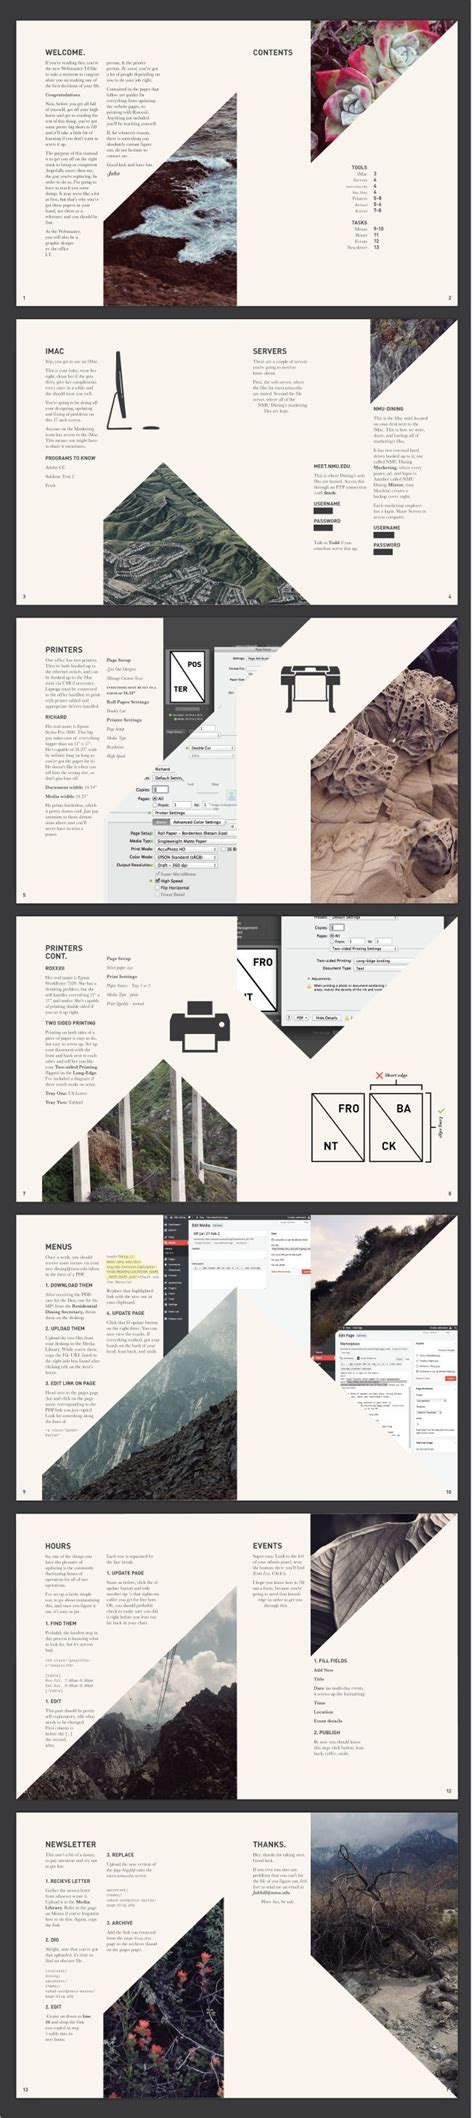 print page layout design inspiration 20 best page numbering images on pinterest editorial